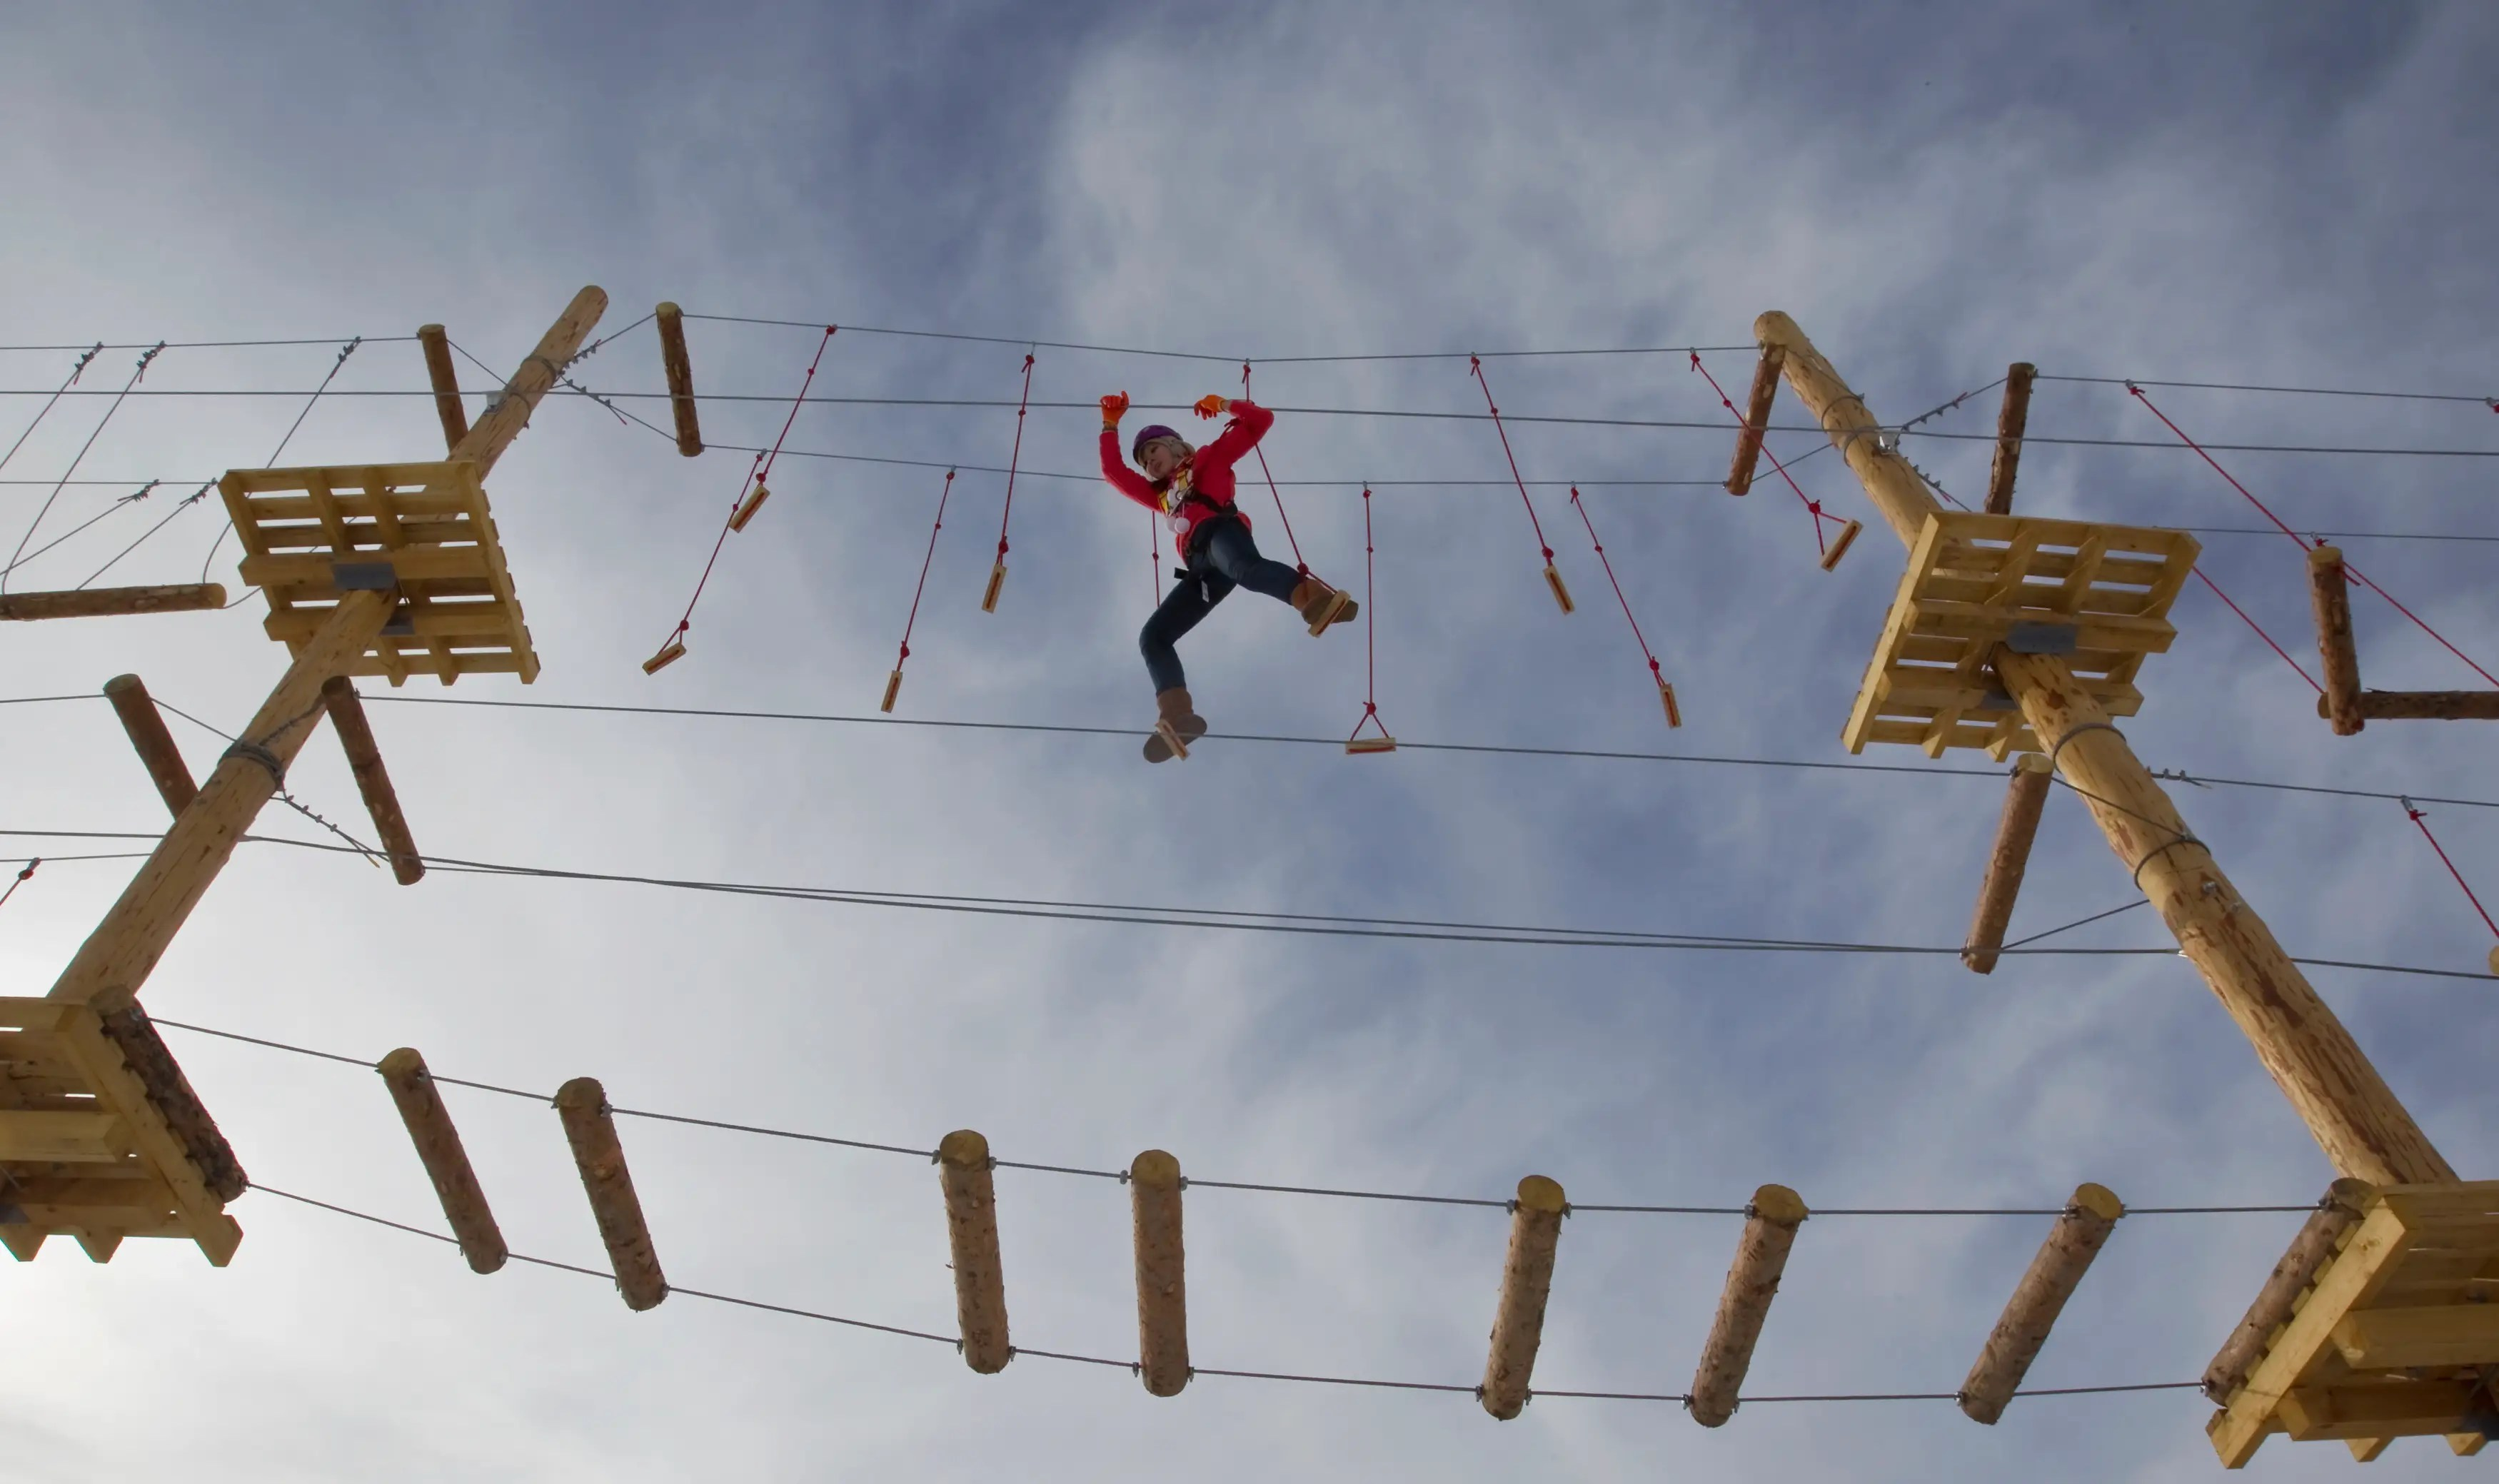 A woman climbs during the opening of the rope park at the Shimbulak Ski Resort in the Tien Shan mountains outside Almaty in Kazakhstan.